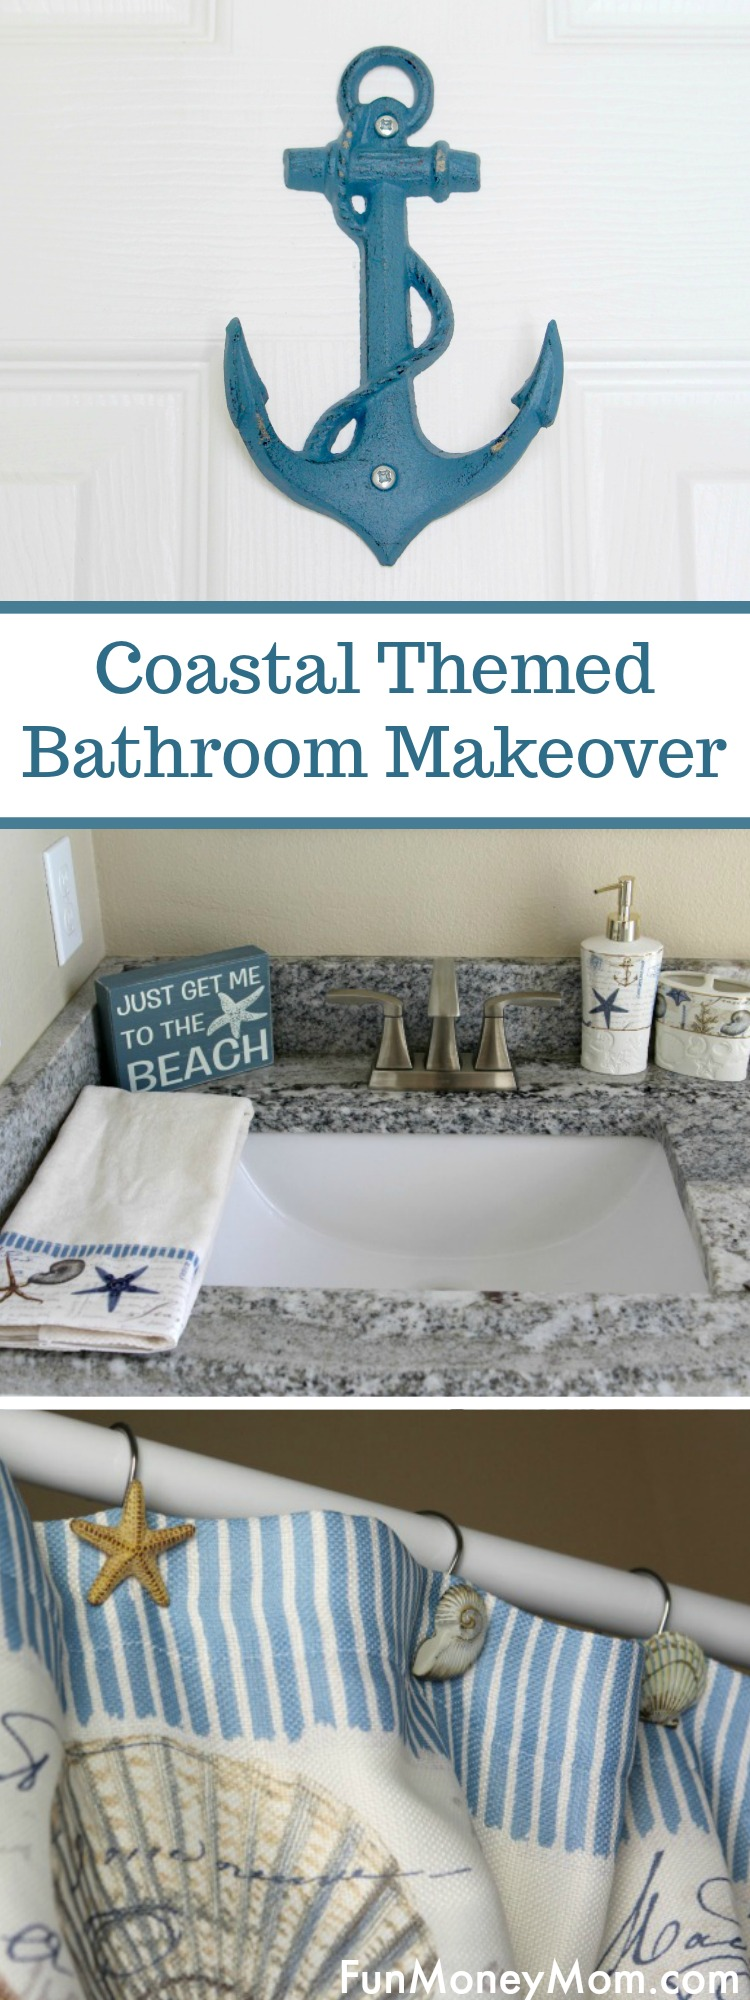 Coastal Themed Bathroom Makeover - Want to remodel your bathroom with a coastal theme? With the right coastal themed accessories and a little cleaning, your bathroom upgrade will be amazing! #ad #DGSpringCleanEssentials #bathroom makeover #remodel